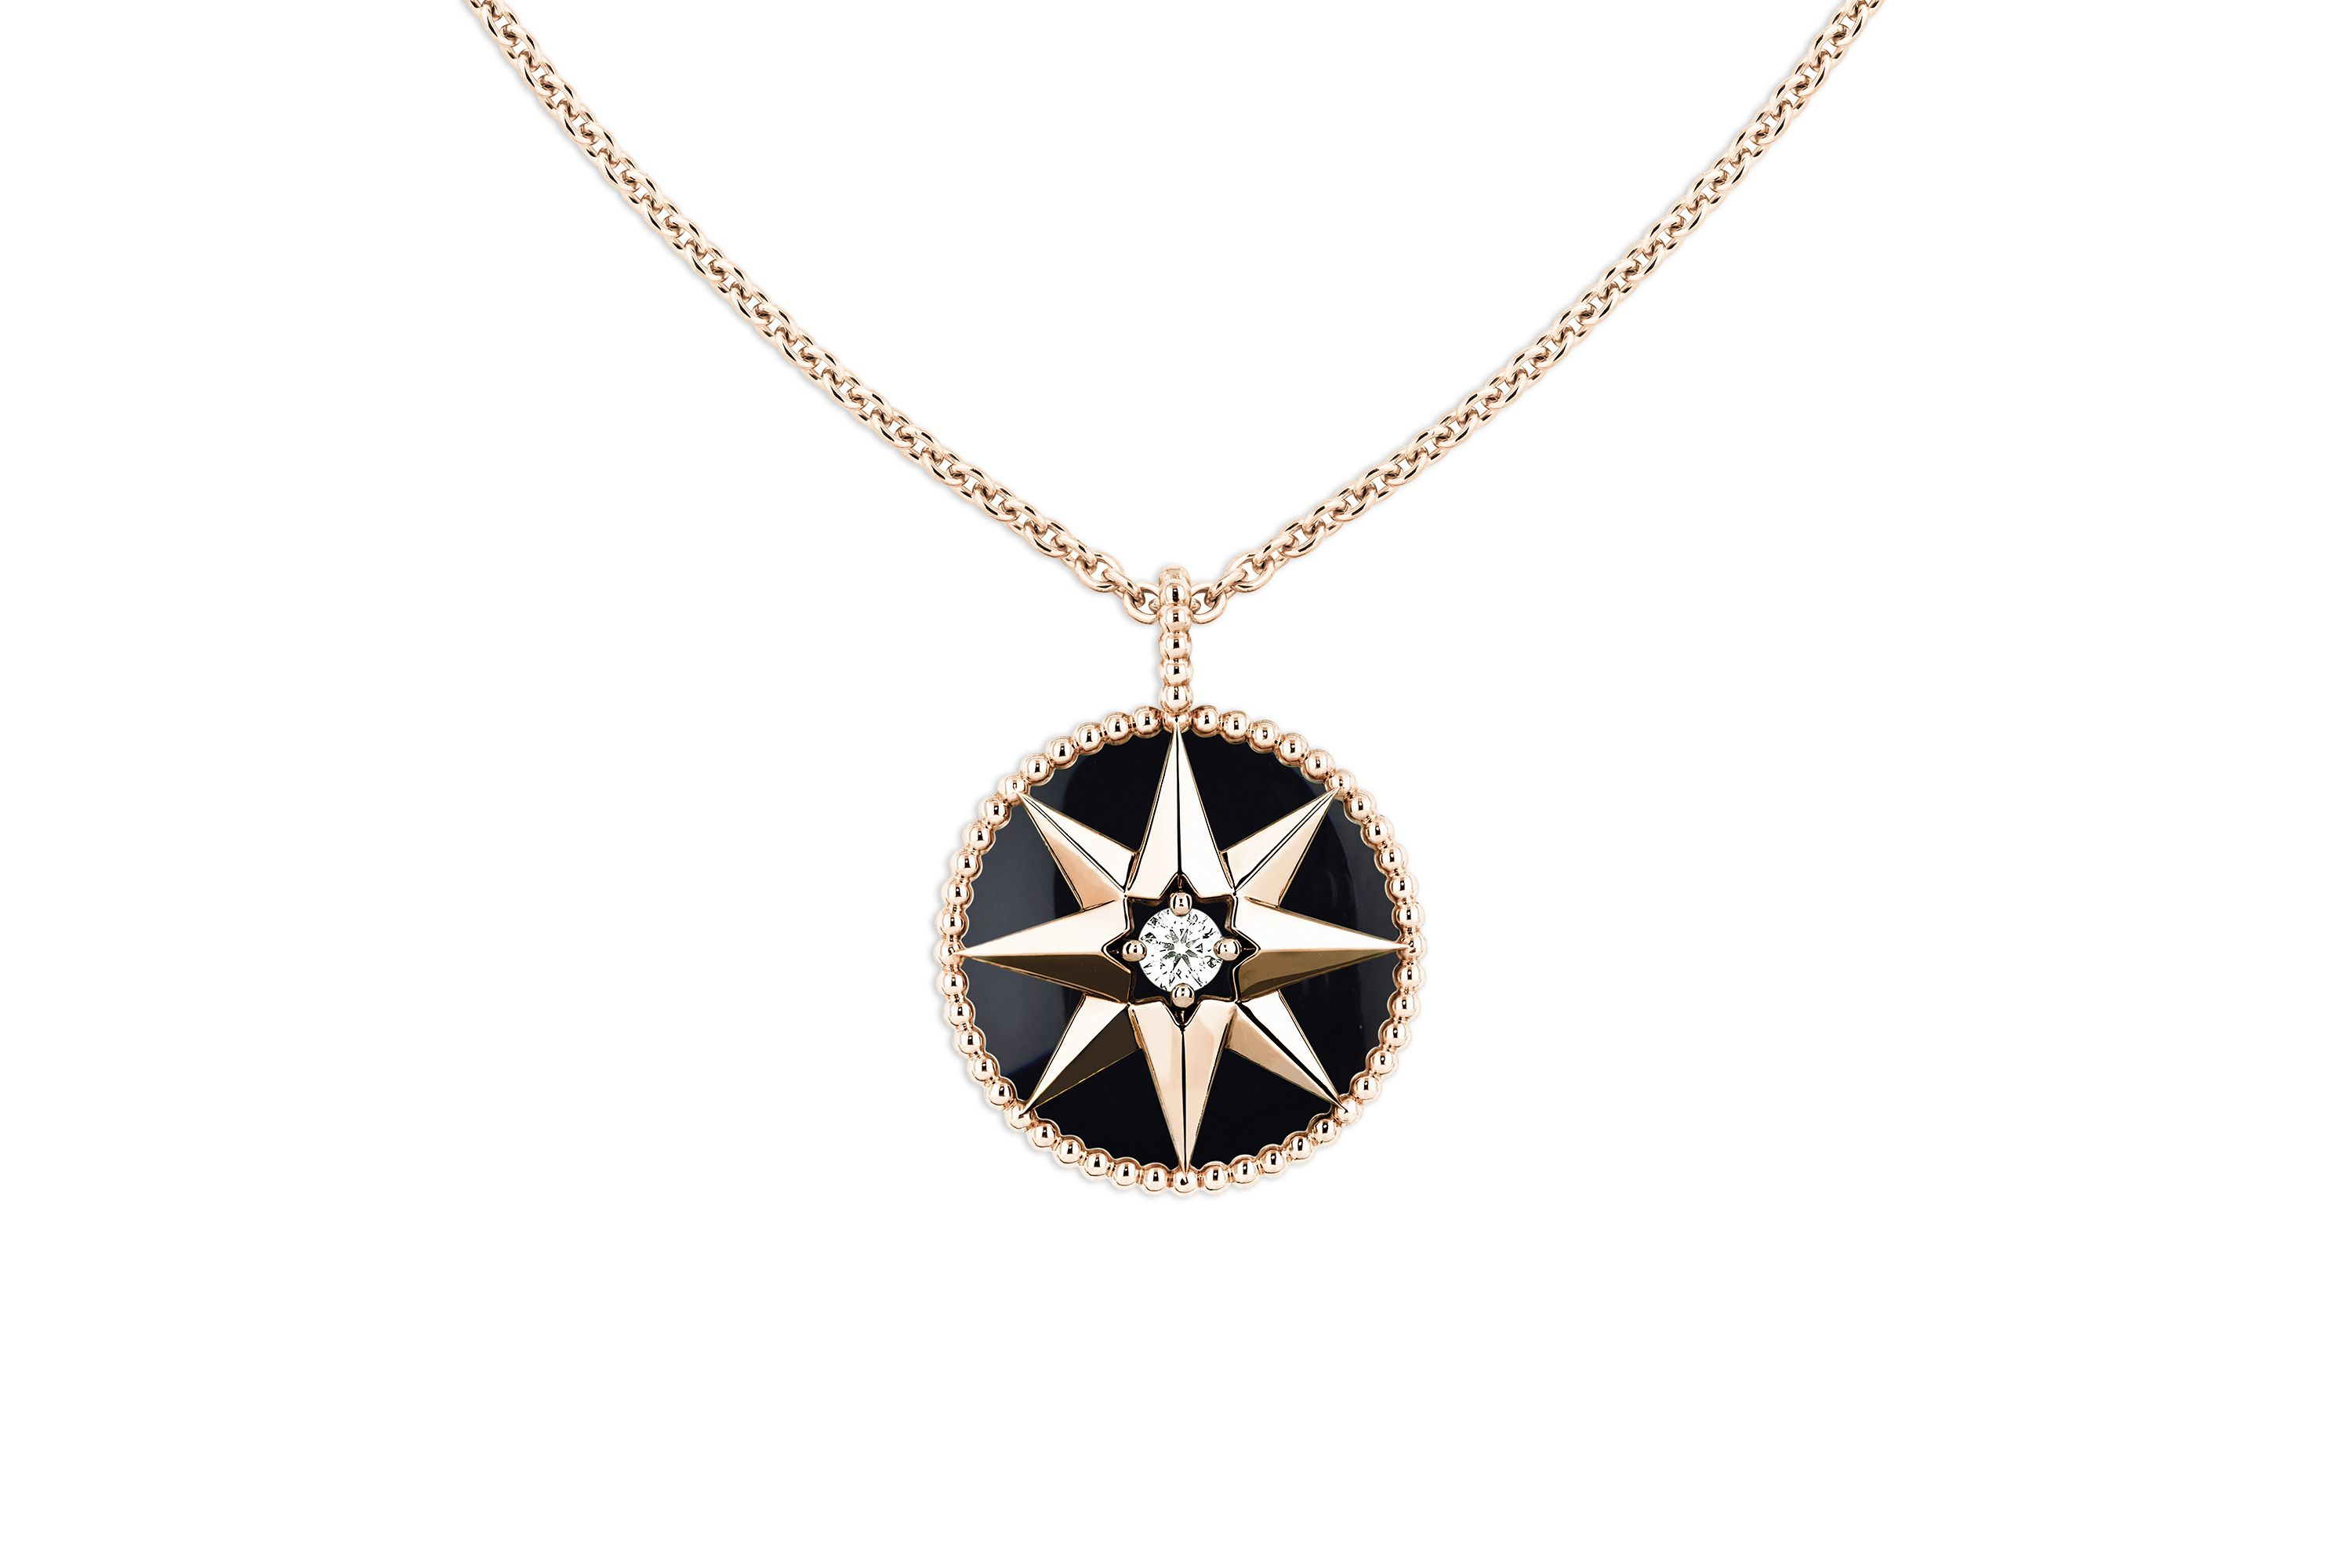 c155058b5f Rose des vents medallion necklace, 18k pink gold, diamond and onyx ...